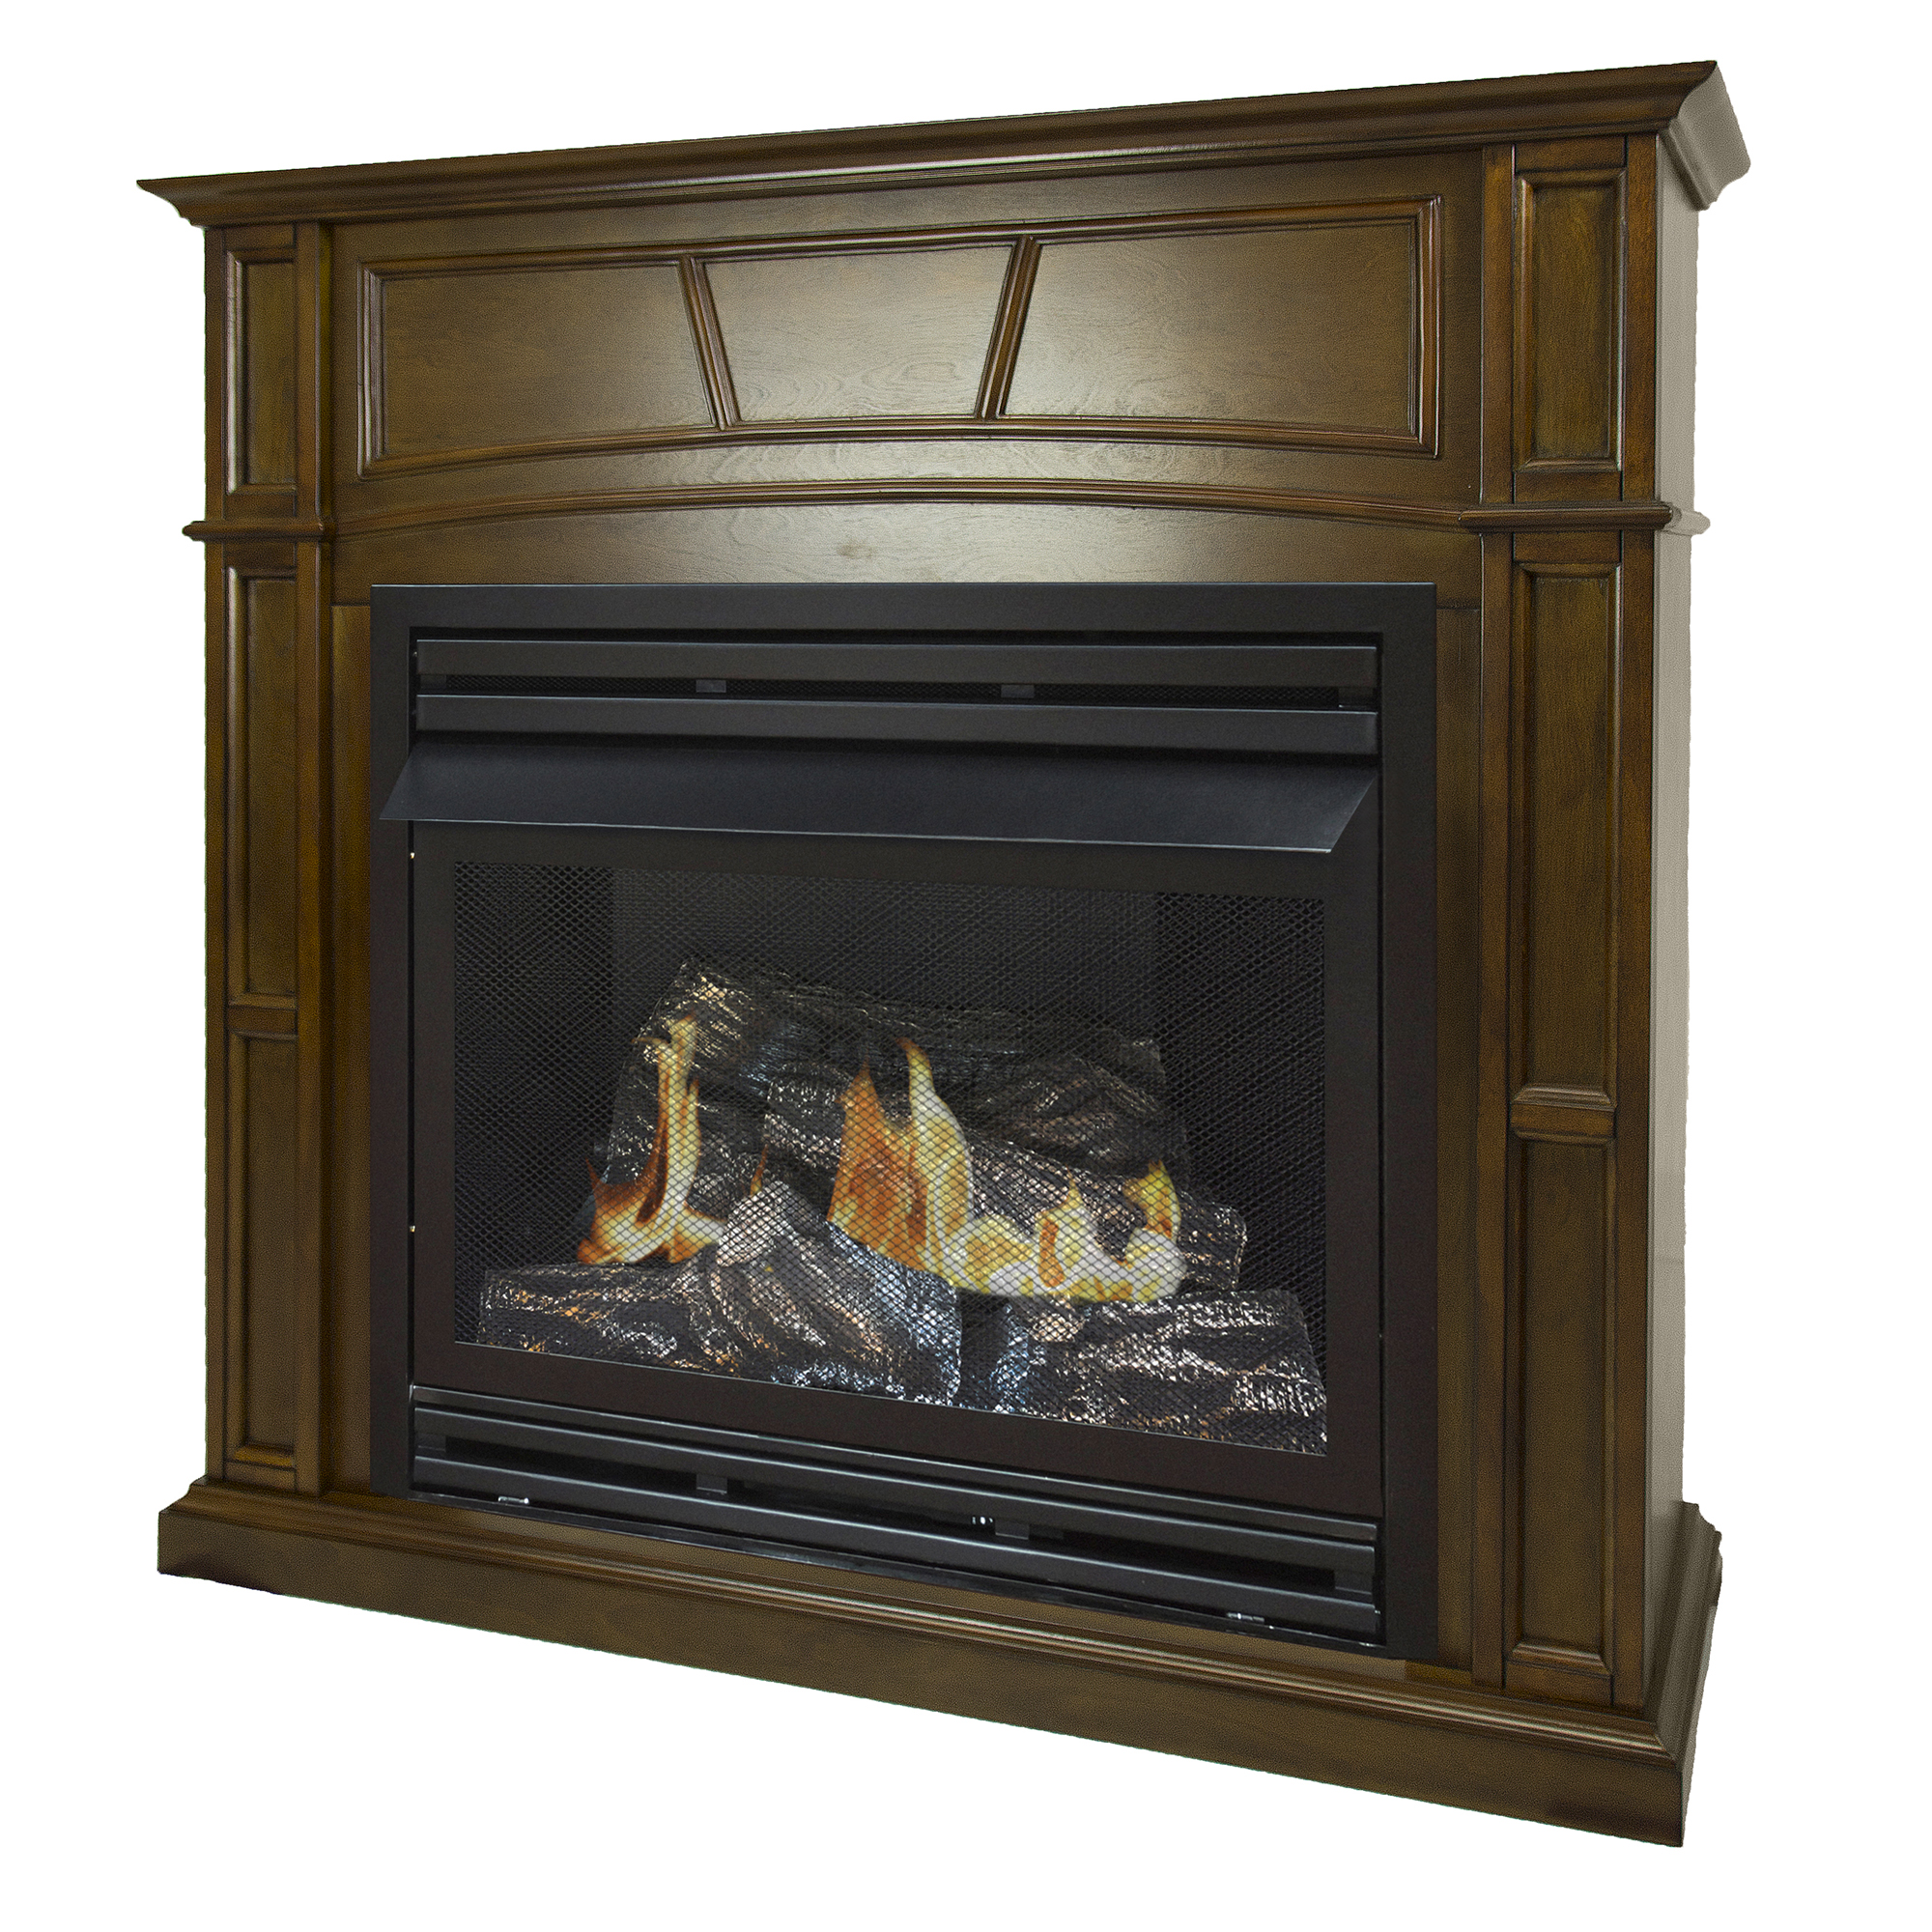 Pleasant Hearth 46 in. Liquid Propane Full Size Heritage Vent Free Fireplace System 32,000... by GHP Group, Inc.